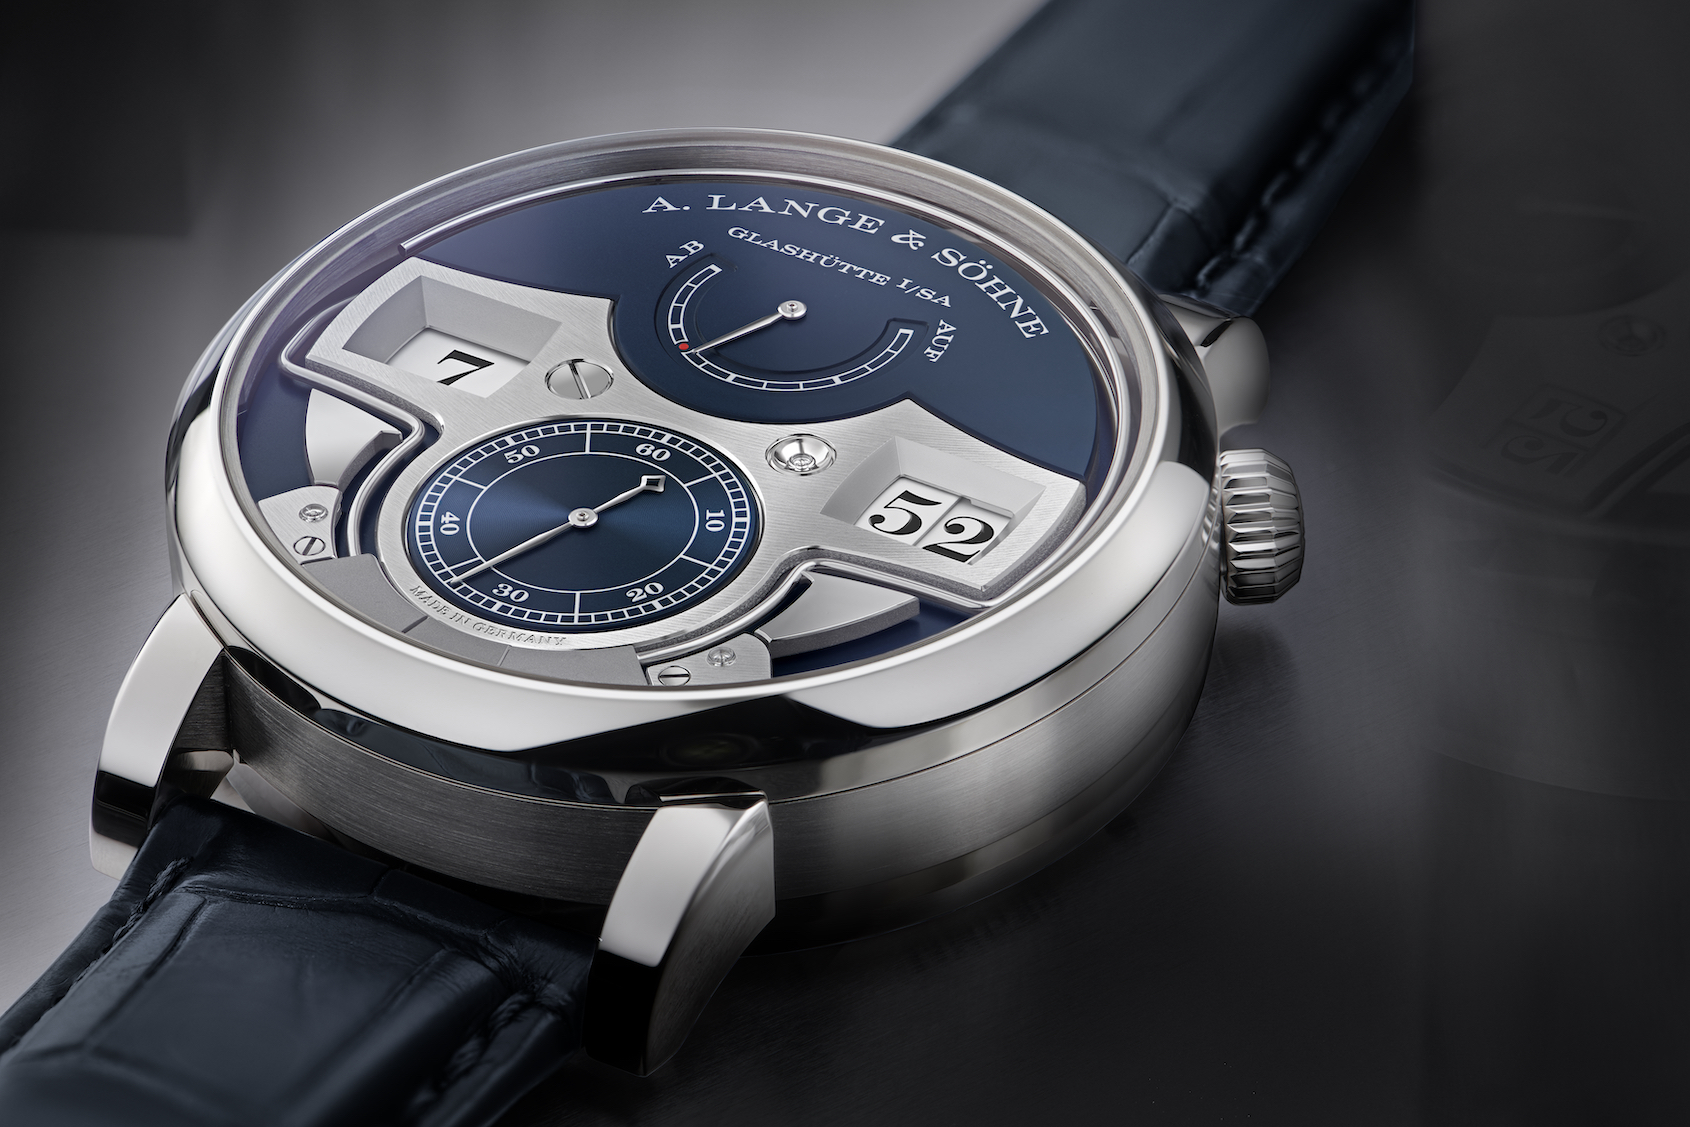 The Top 5 Luxury Timepieces Of 2020 (So Far!) luxury timepiece The Top 5 Luxury Timepieces Of 2020 (So Far!) The Top 5 Luxury Timepieces Of 2020 So Far 4 pantone color of the year 2021's Pantone Color Of The Year Is Out: Not One But Two Hues! The Top 5 Luxury Timepieces Of 2020 So Far 4